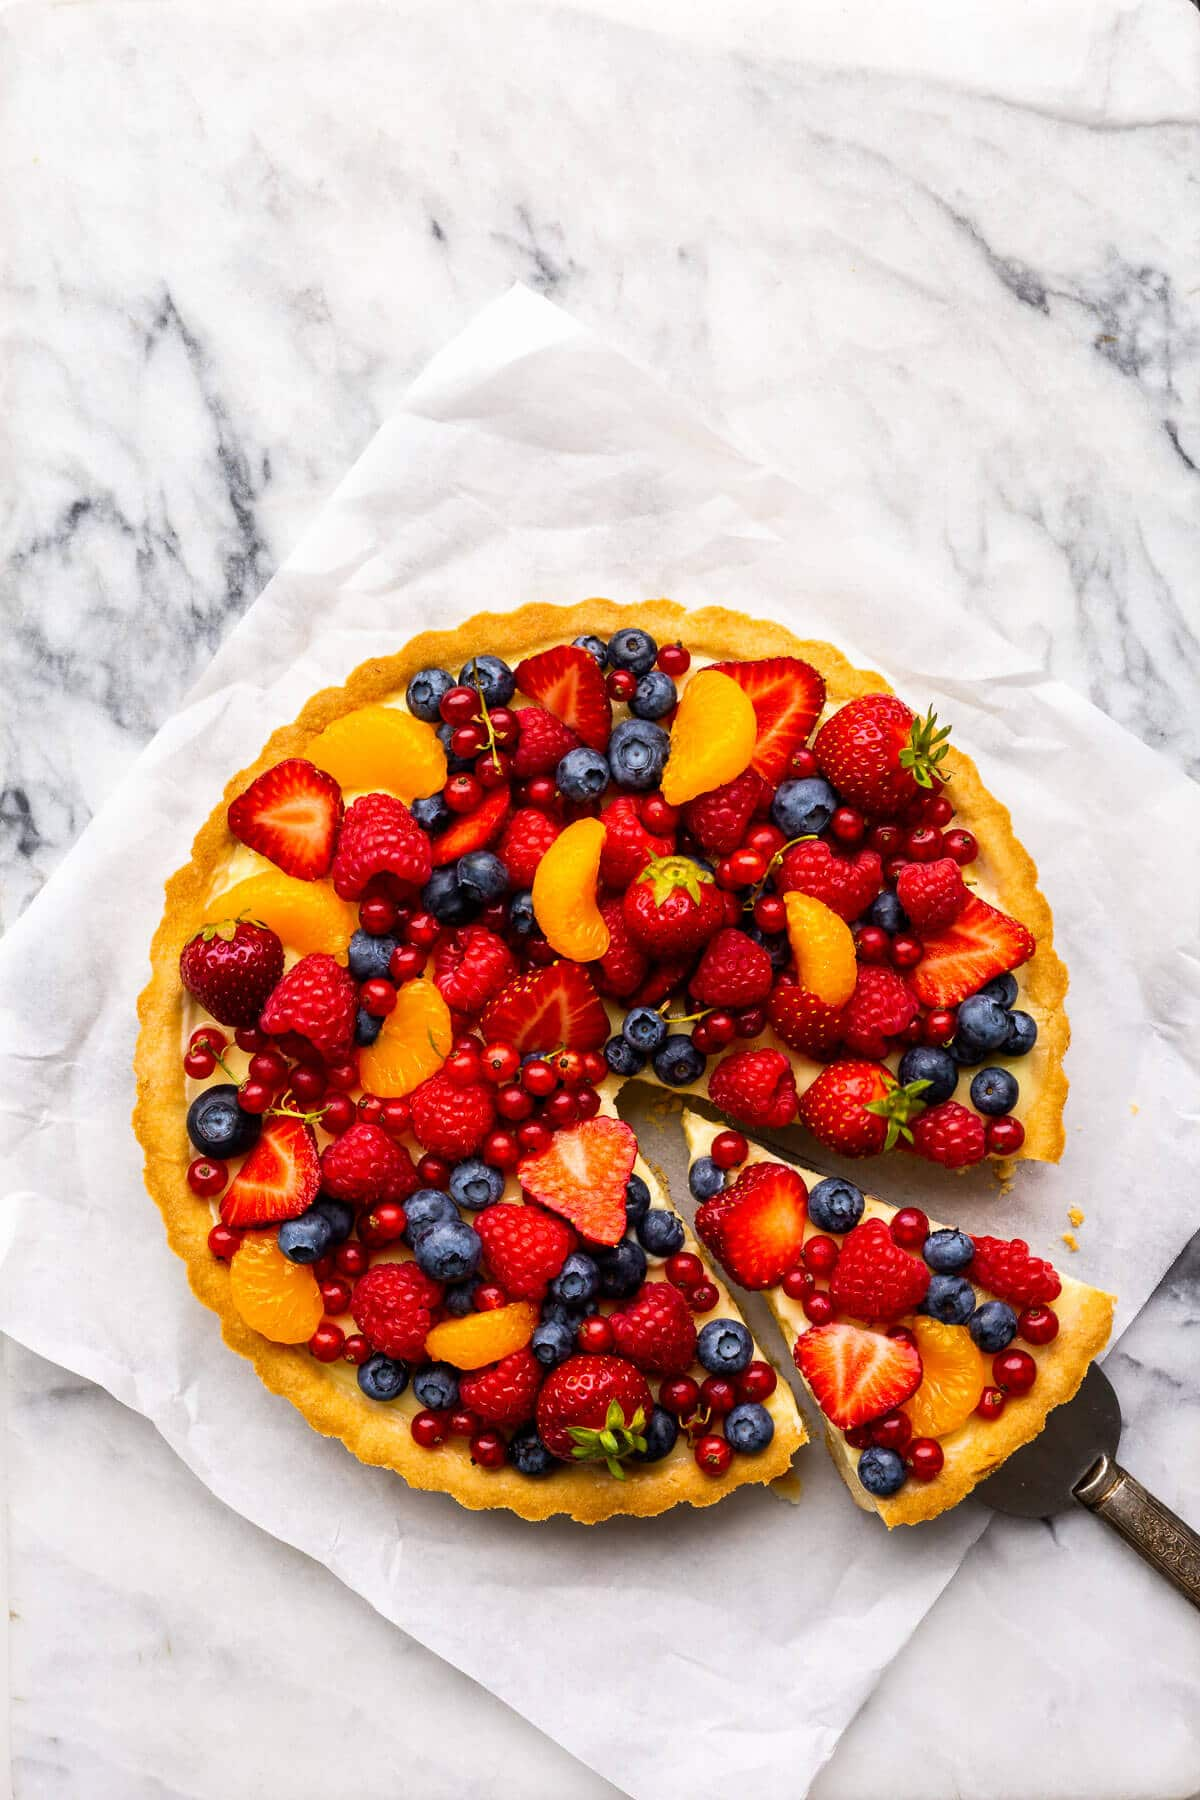 Fruit tart with vanilla pastry cream and fresh berries on parchment paper on marble.